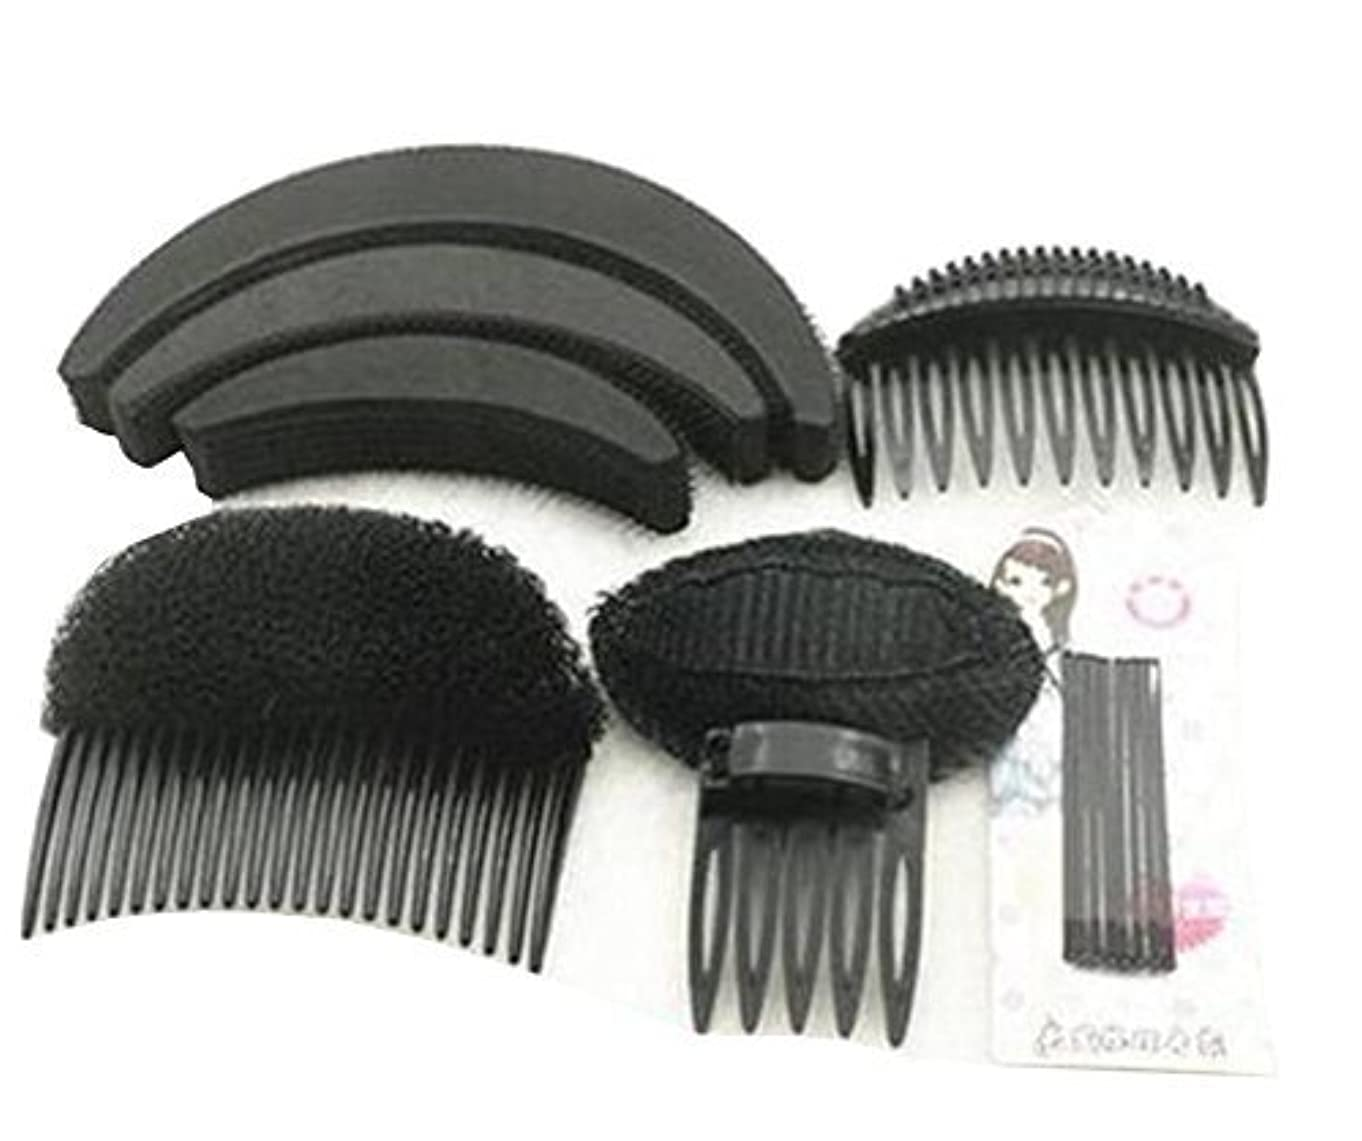 協同中絶退化する1 Set As picture Shown Hair Styler Styling Tool DIY Hairpin Bump Up Inserts Base Comb Bumpits Bump Foam Pads Braiding...